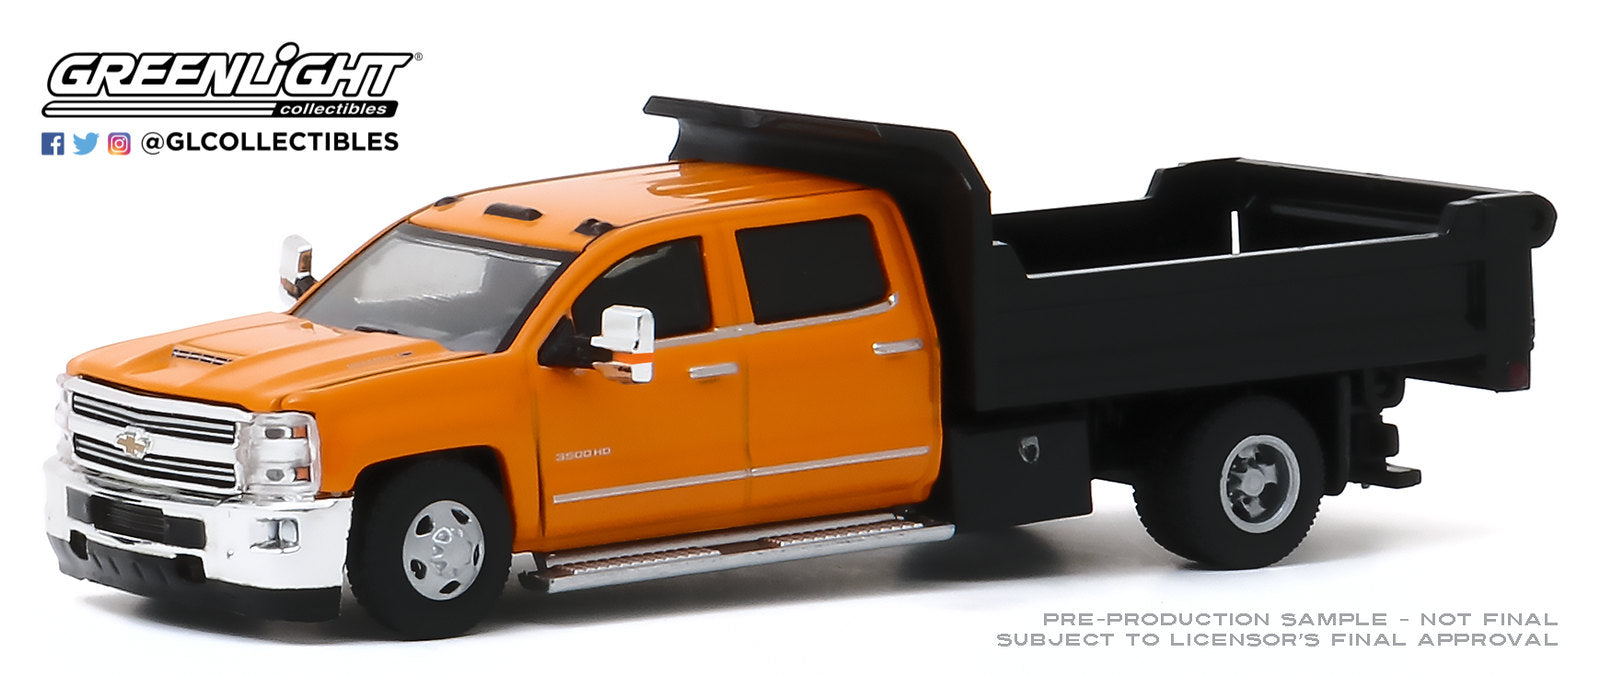 GreenLight 1:64 Dually Drivers Series 4 - 2017 Chevrolet Silverado 3500 Dually Dump Truck - Orange and Black 46040-B